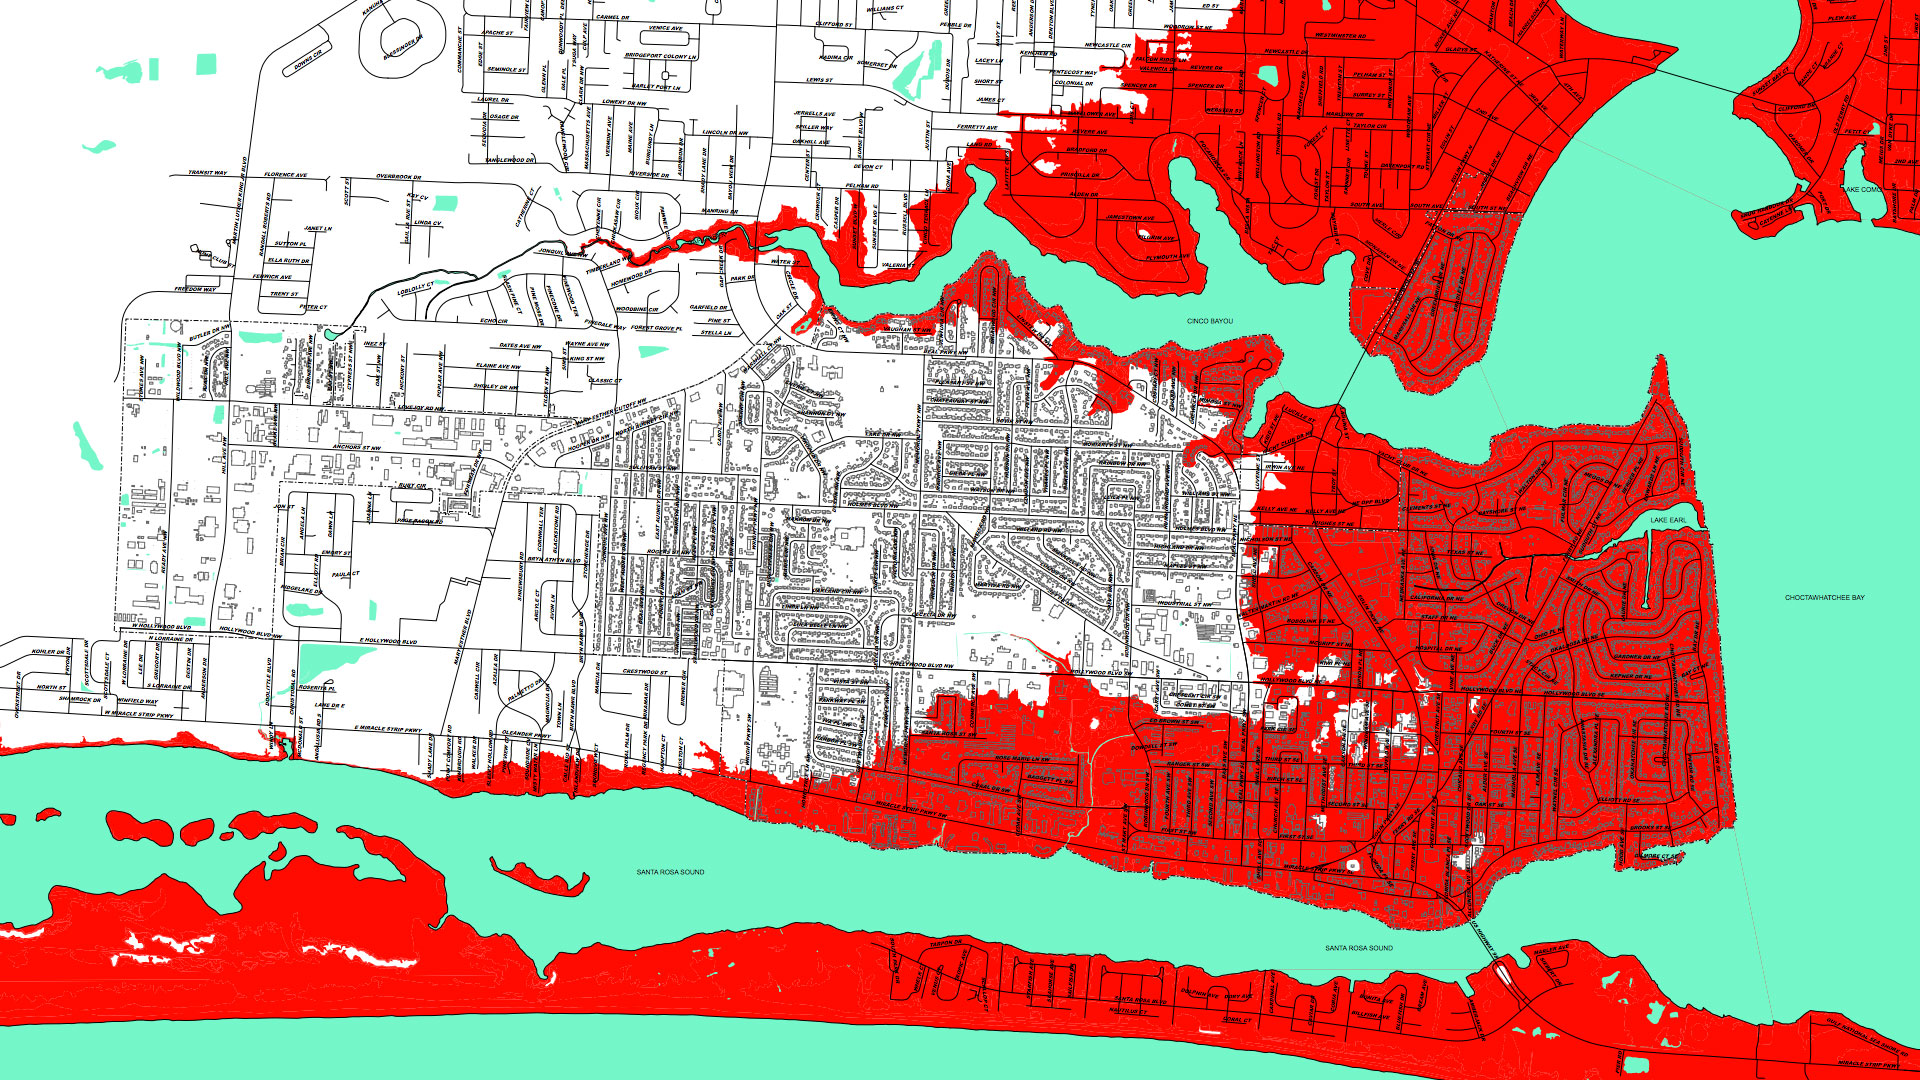 City Of Fort Walton Beach Destin Hurricane Surge Maps